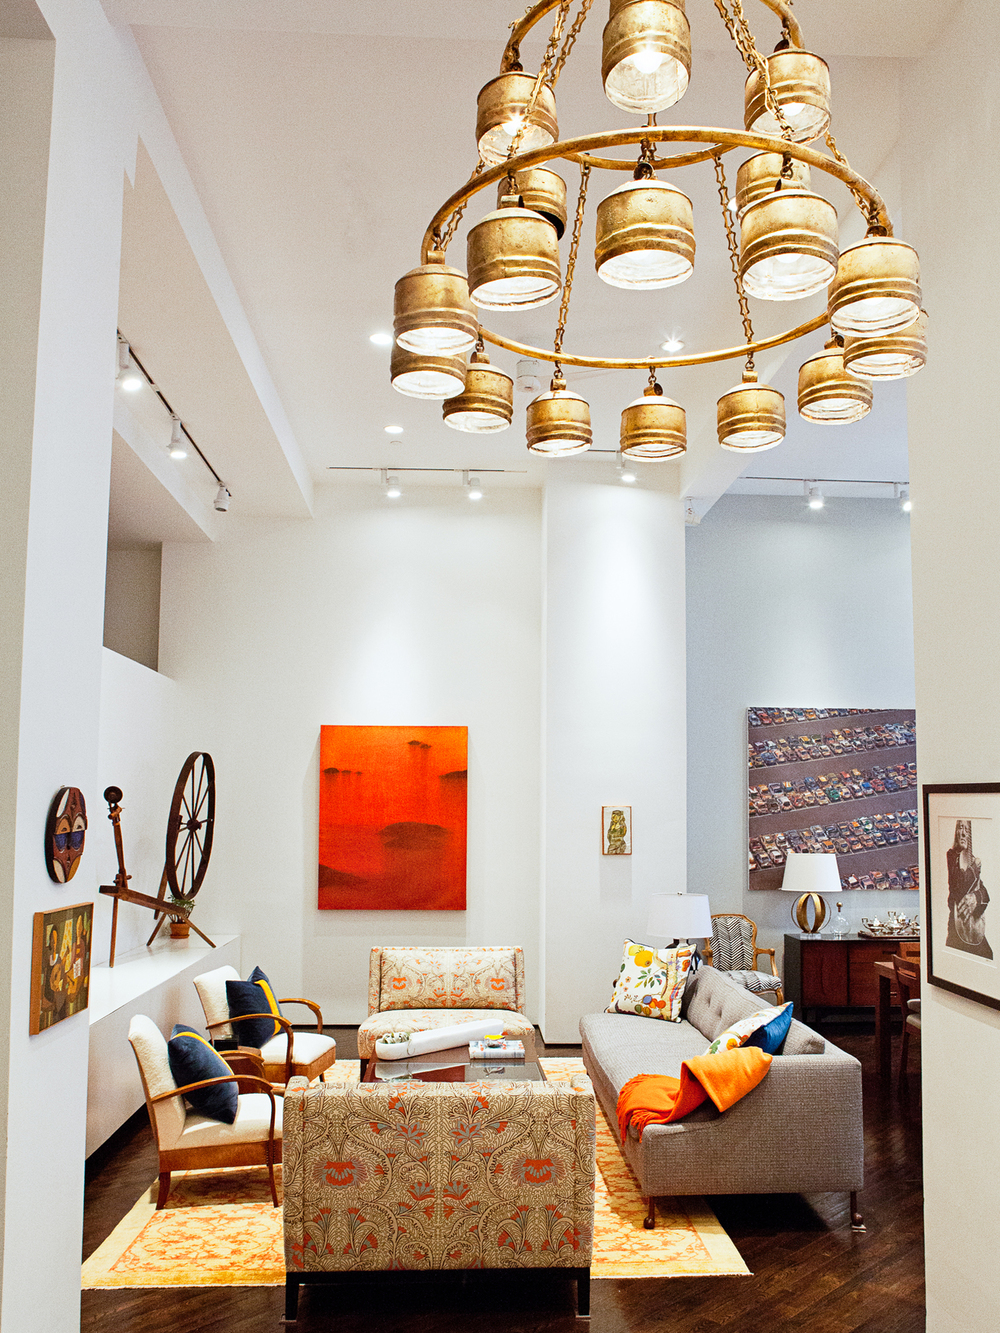 A Tribeca living room designed by Lindsey Lane